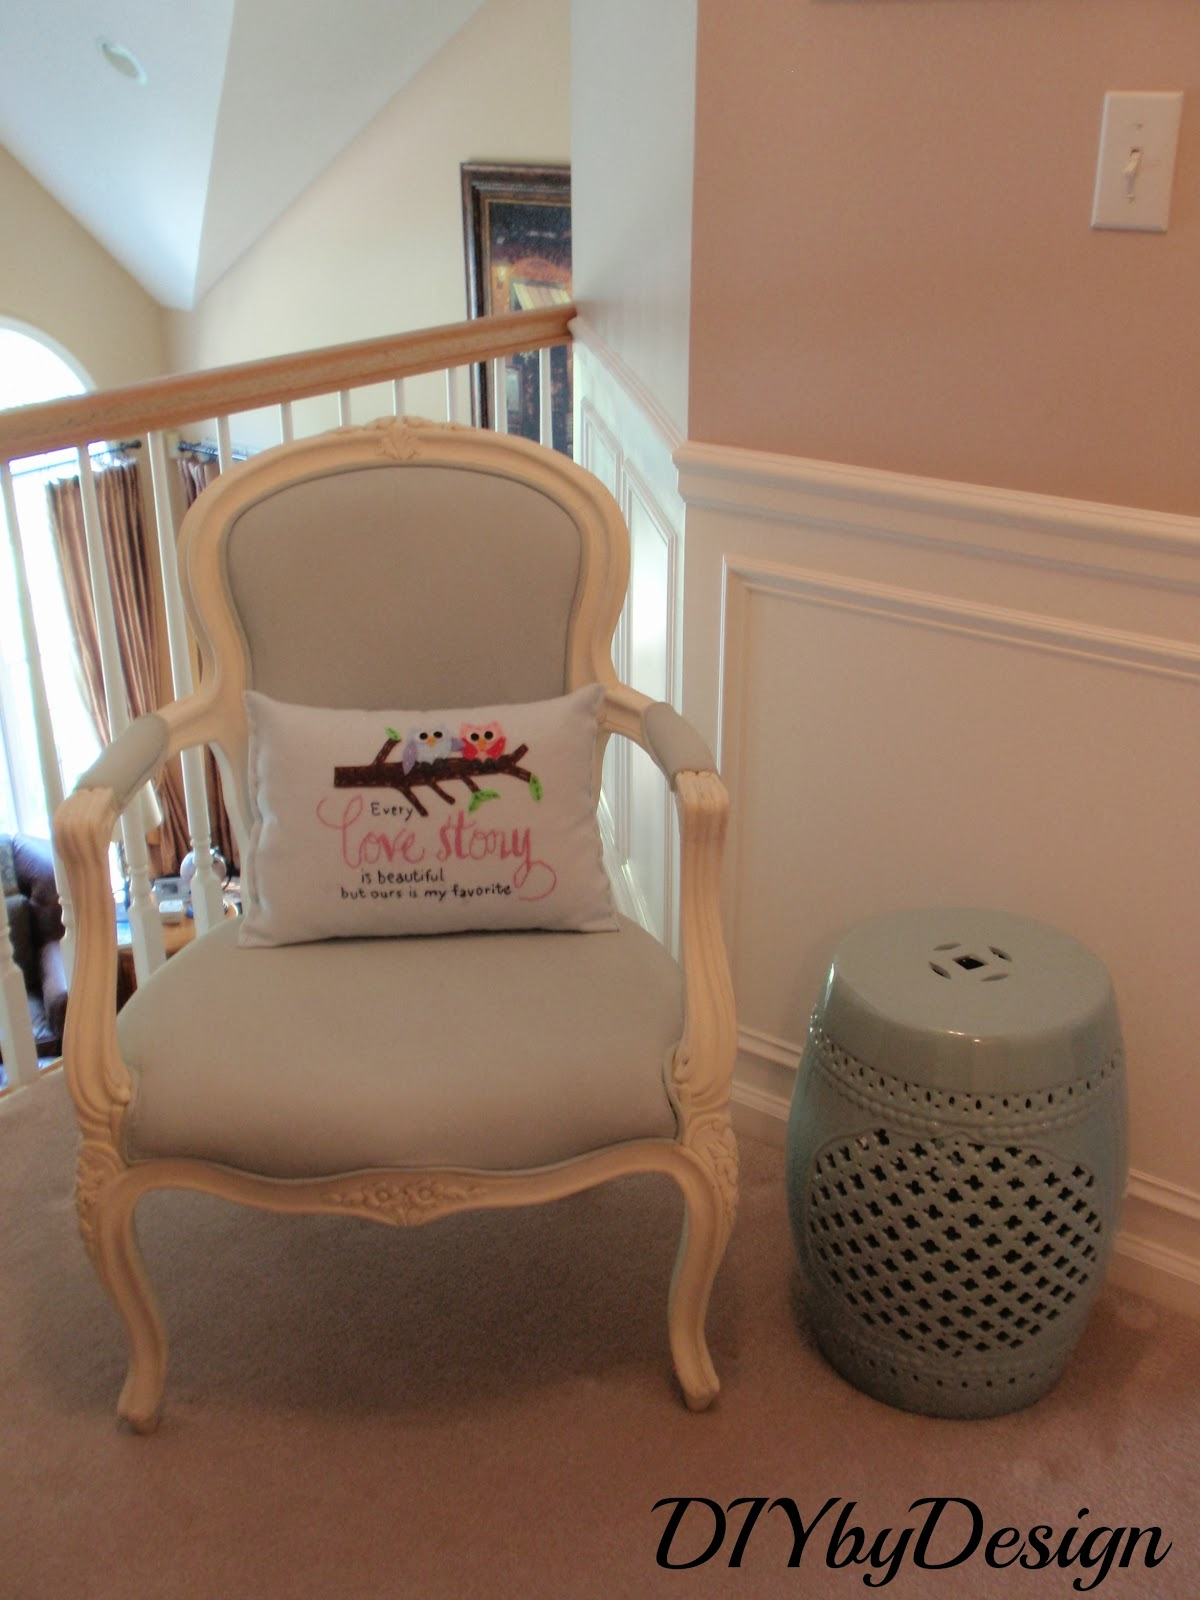 Diy By Design: Using Garden Stools In Home Decor